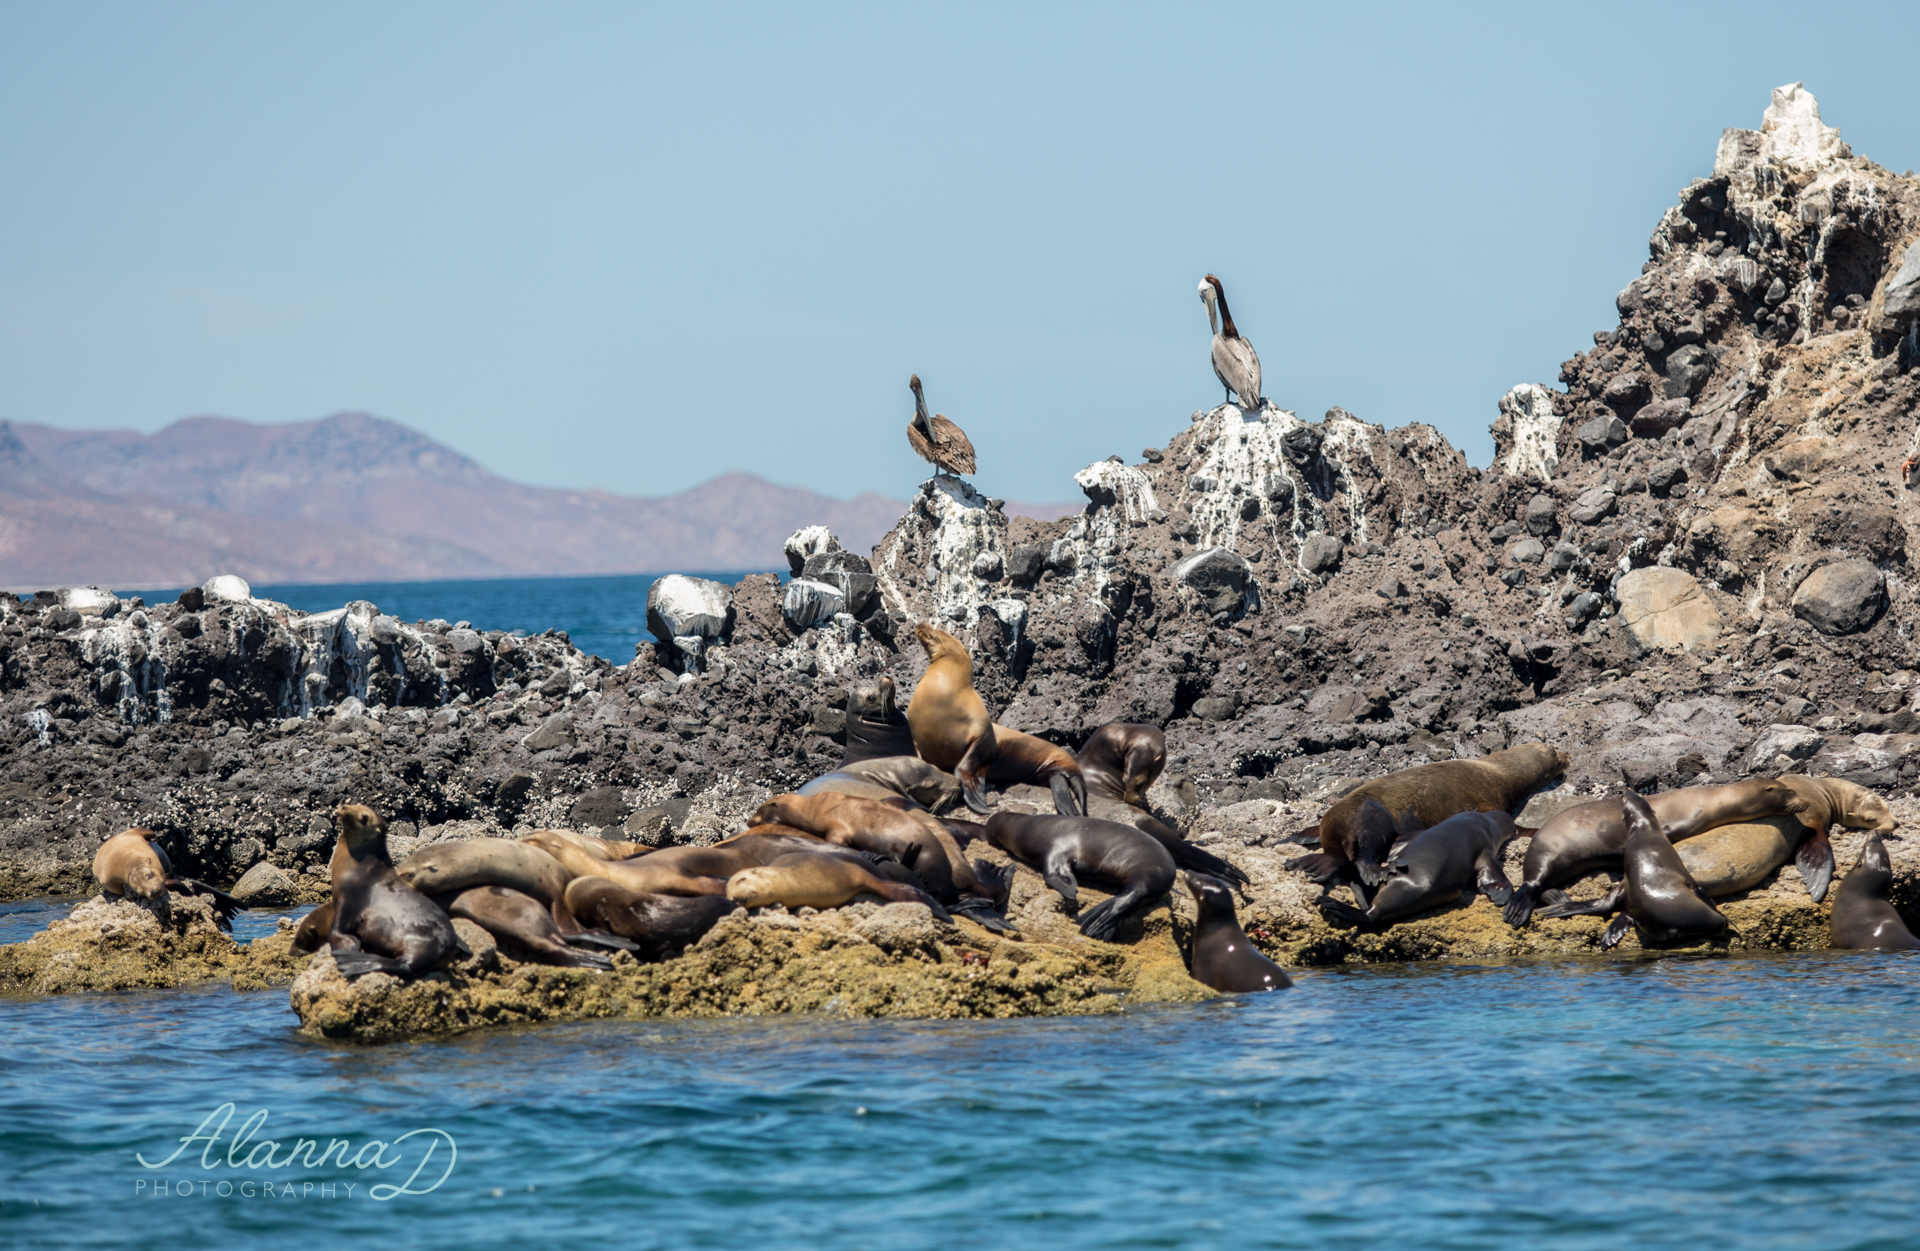 Sealion Snorkle Tour La Paz Mexico - Alanna D Photography